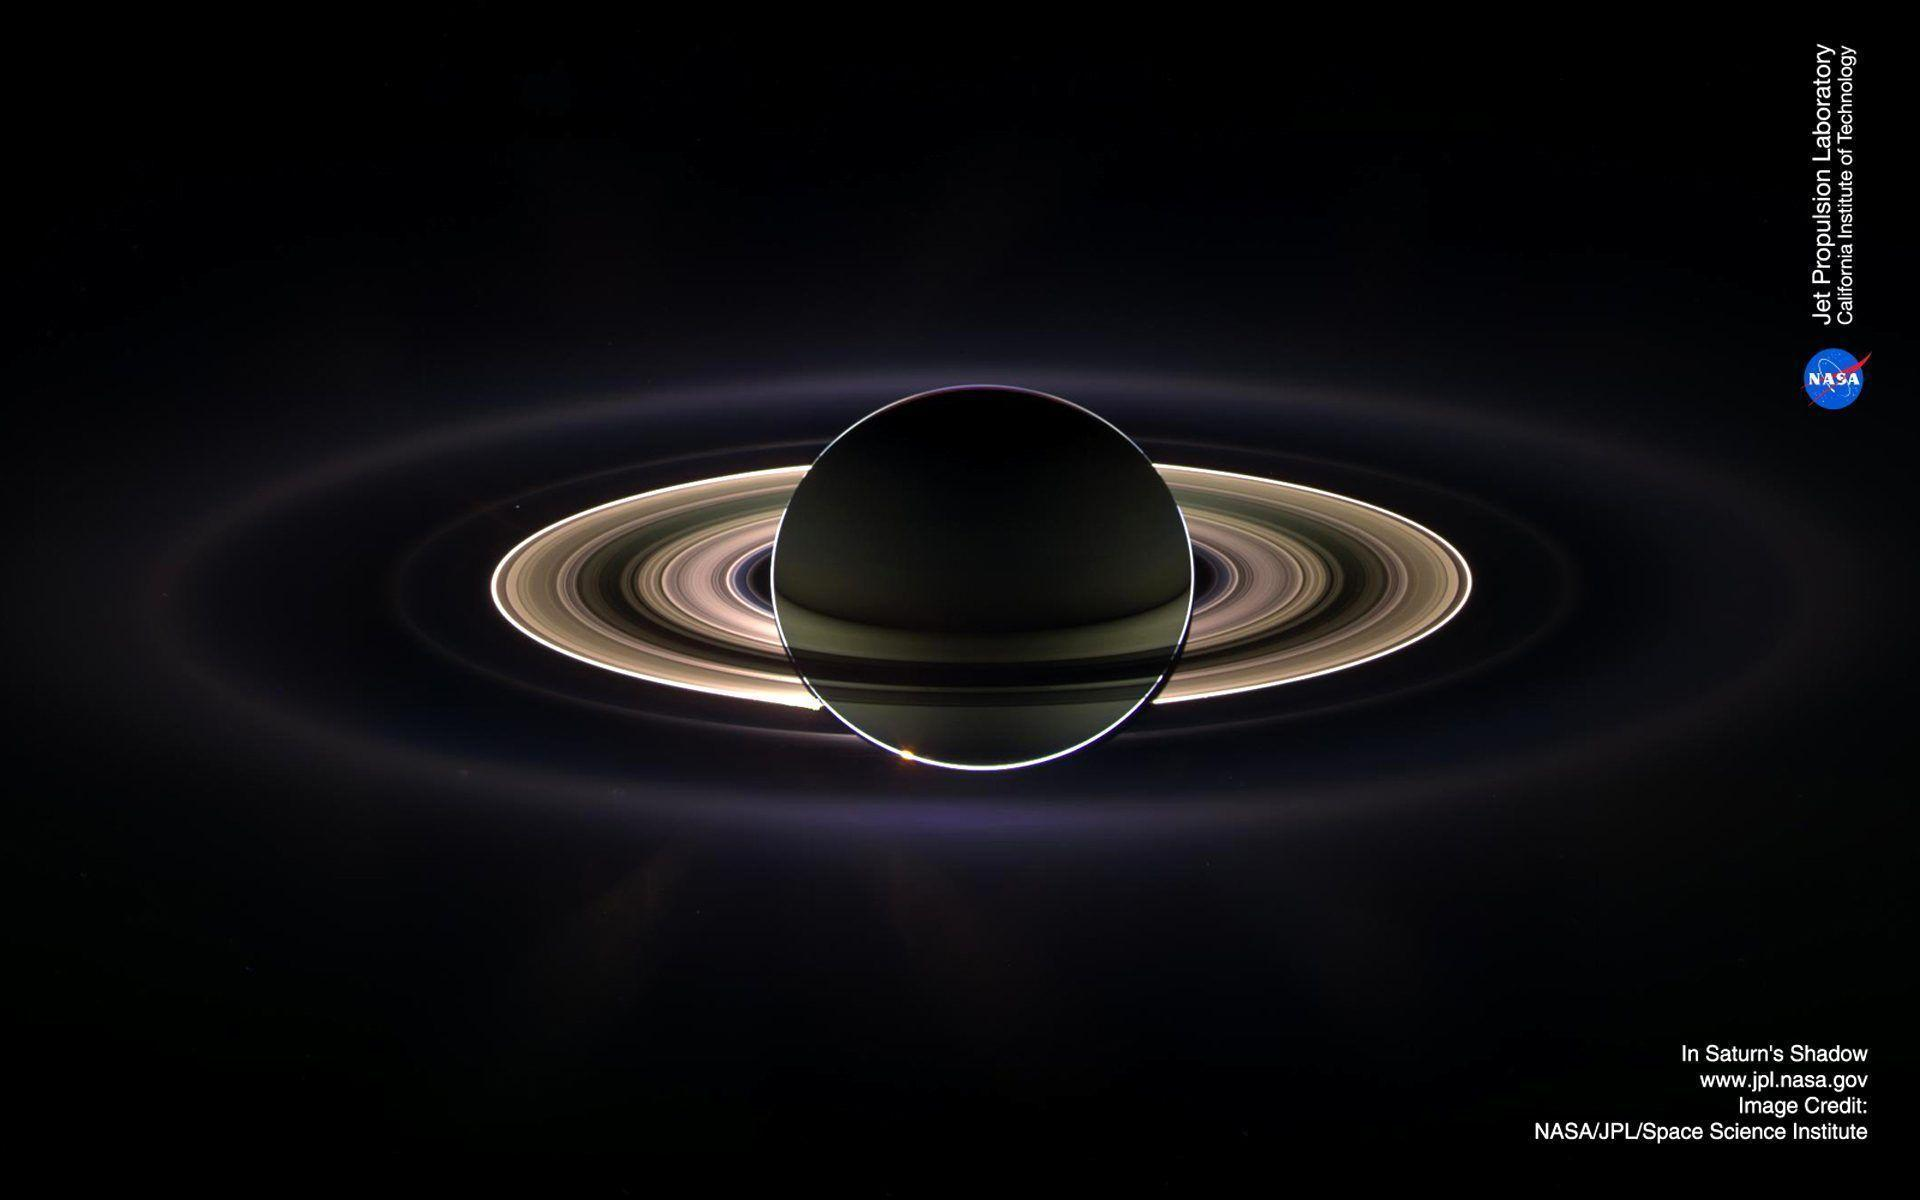 Wallpaper saturno wallpapers - Wallpapers For Saturn Wallpaper Hd